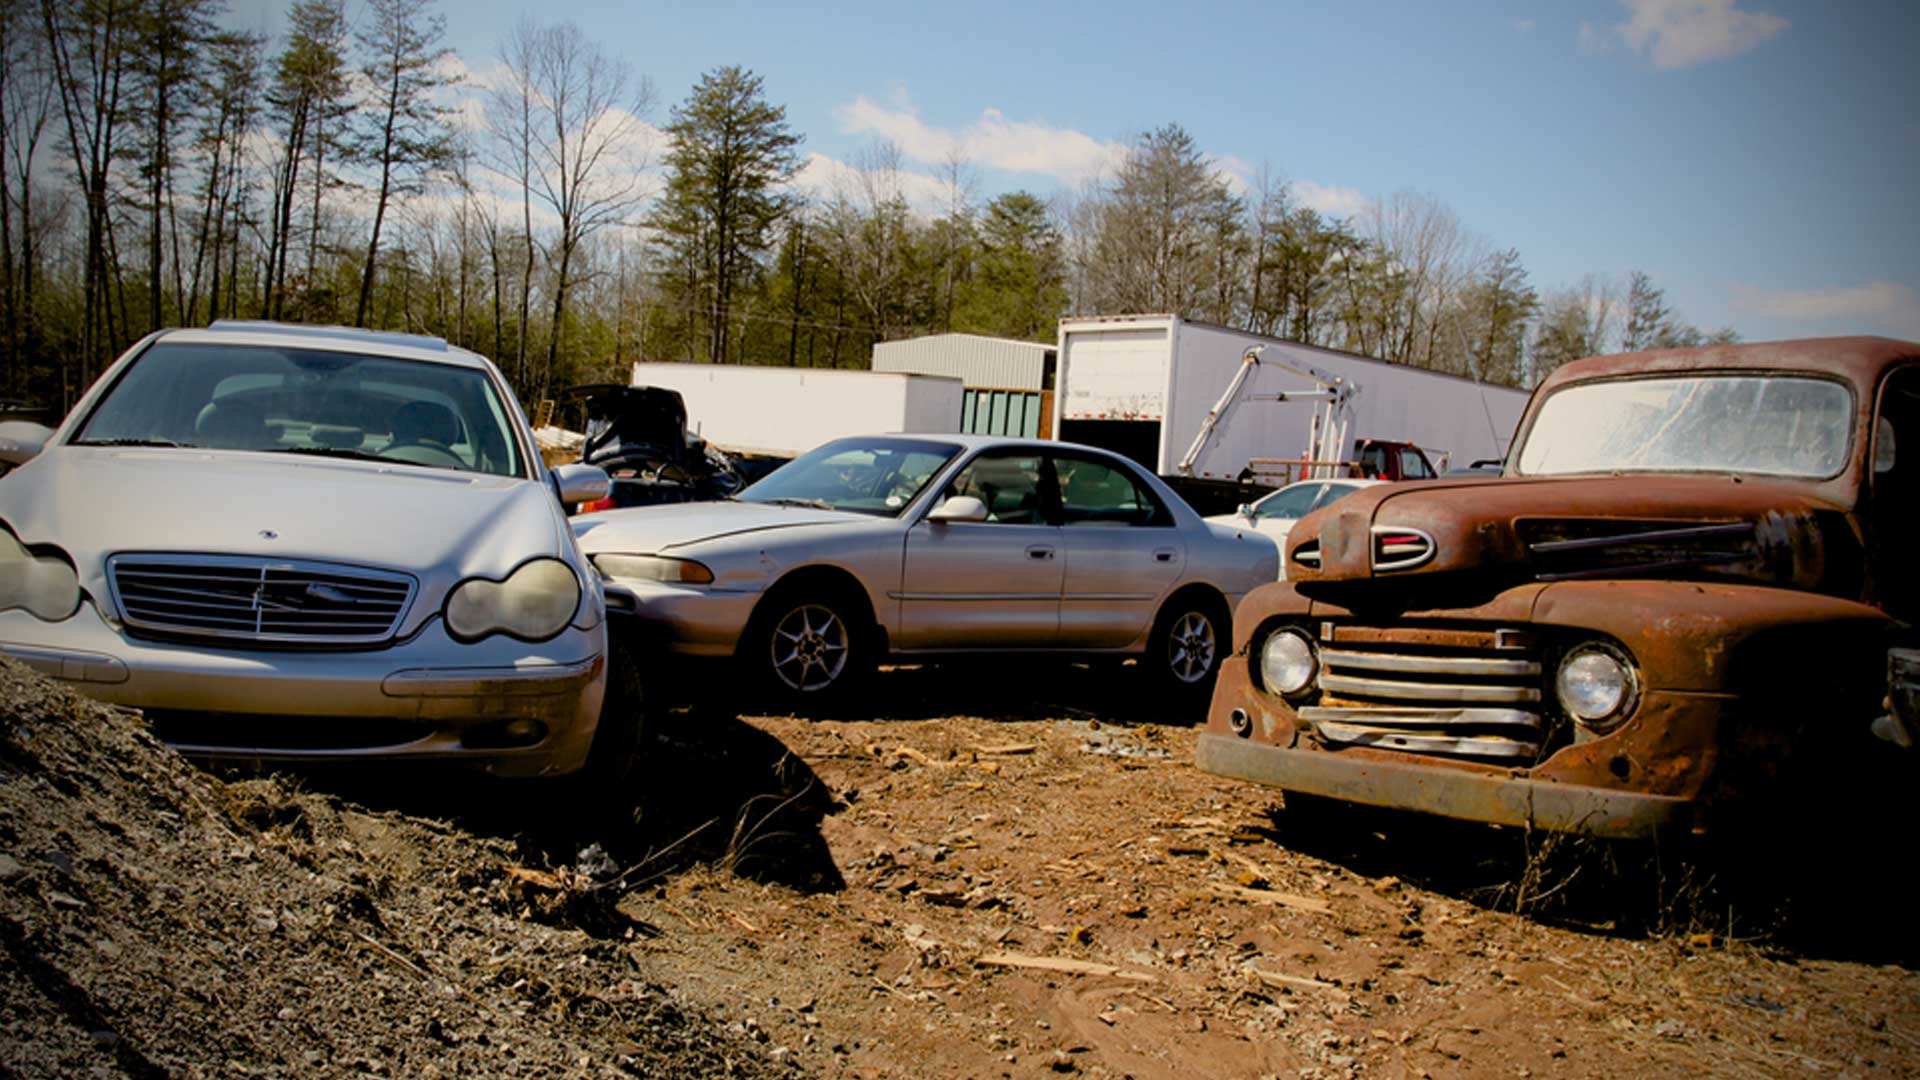 foss recycling buys junk cars